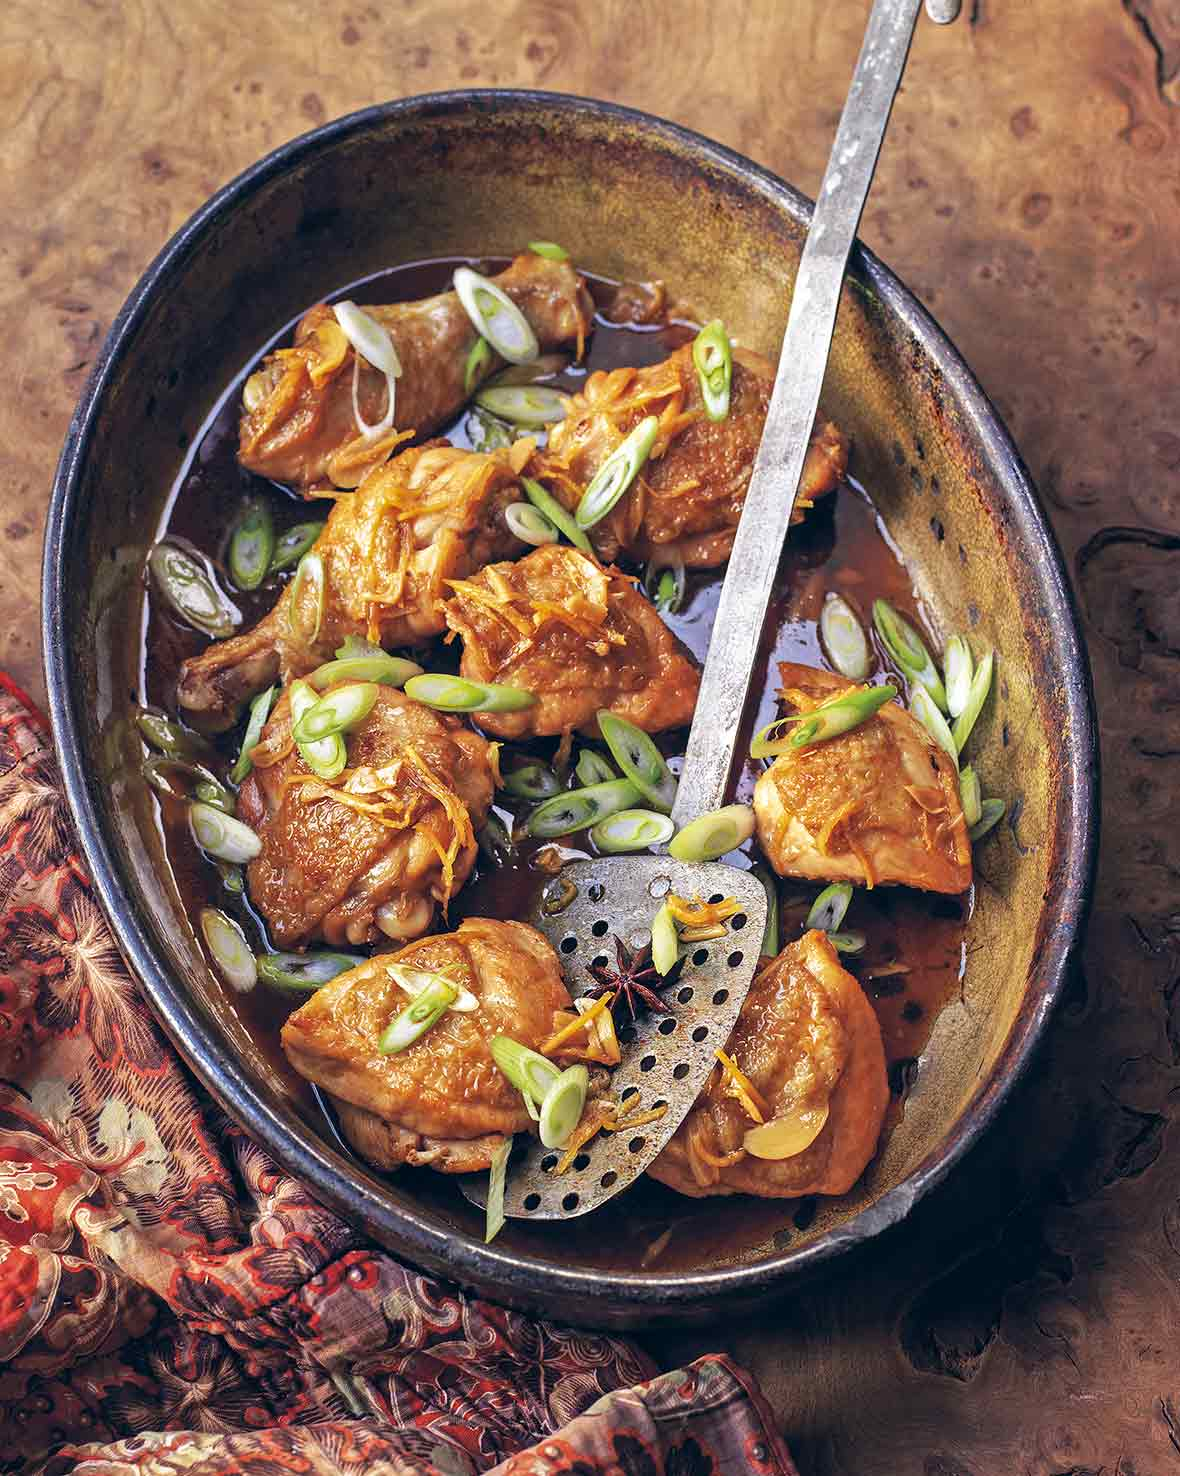 A crock filled with browned chicken thighs and sliced scallions, a spatula in the middle